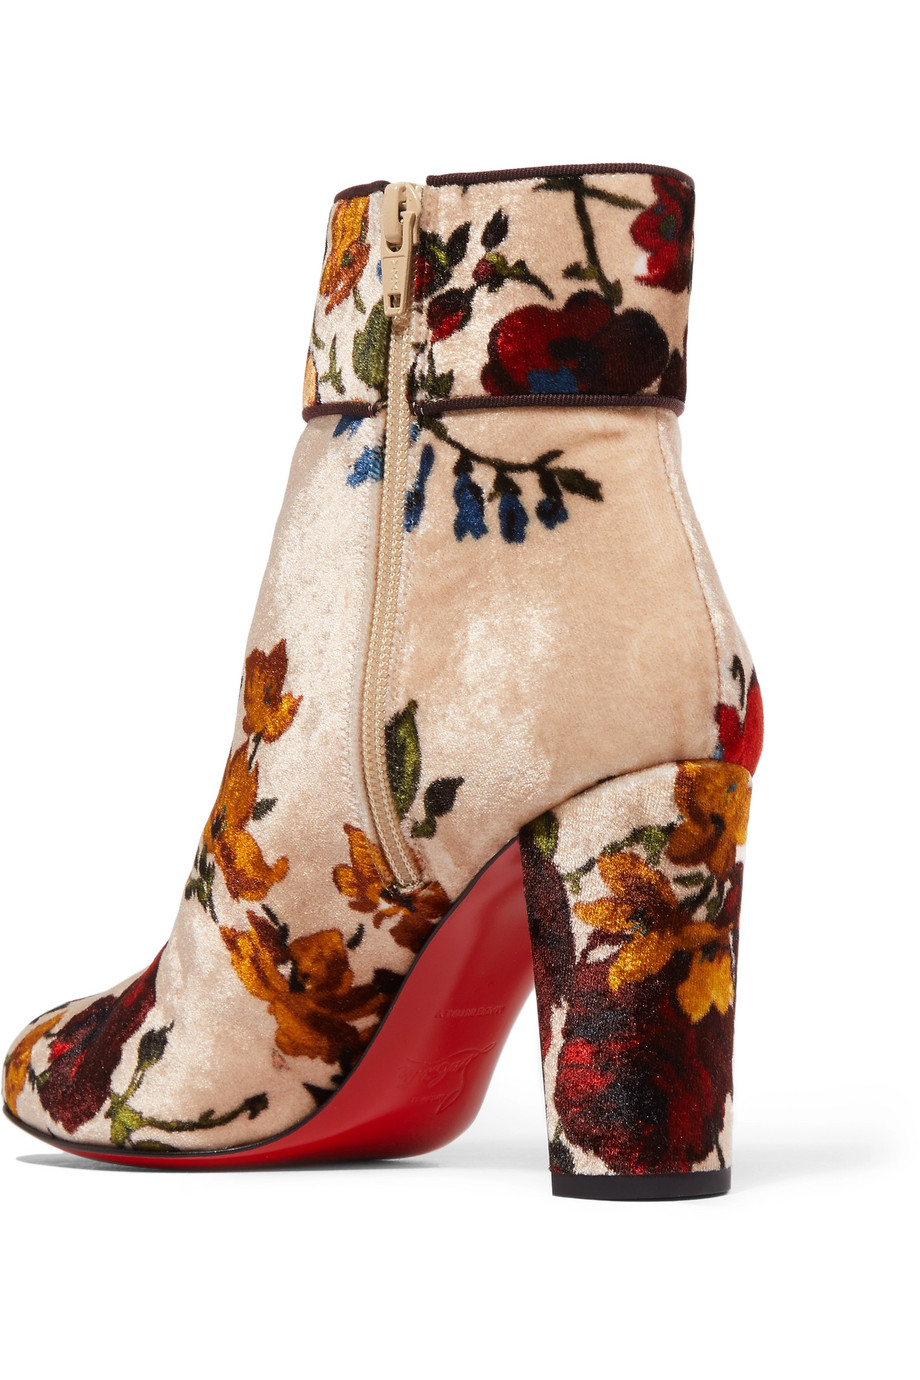 Ankle boots decorated Christian Louboutin buy Ankle boots decorated Christian Louboutin internet shop